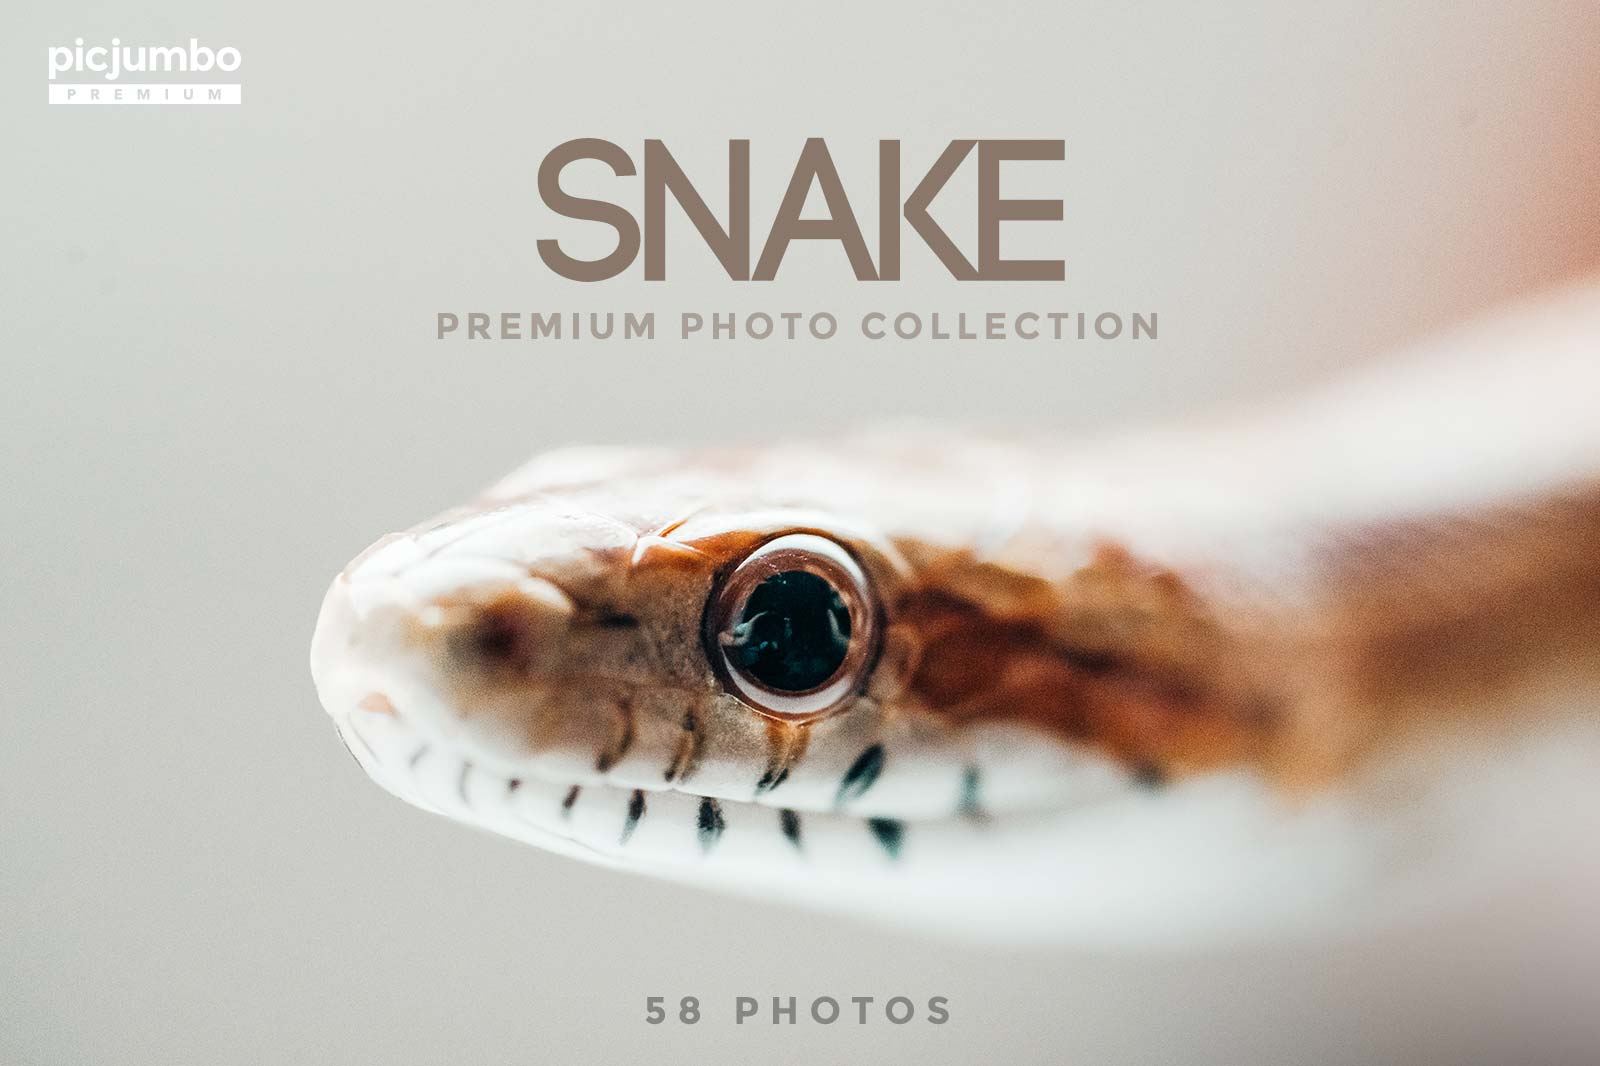 Snake stock photo collection